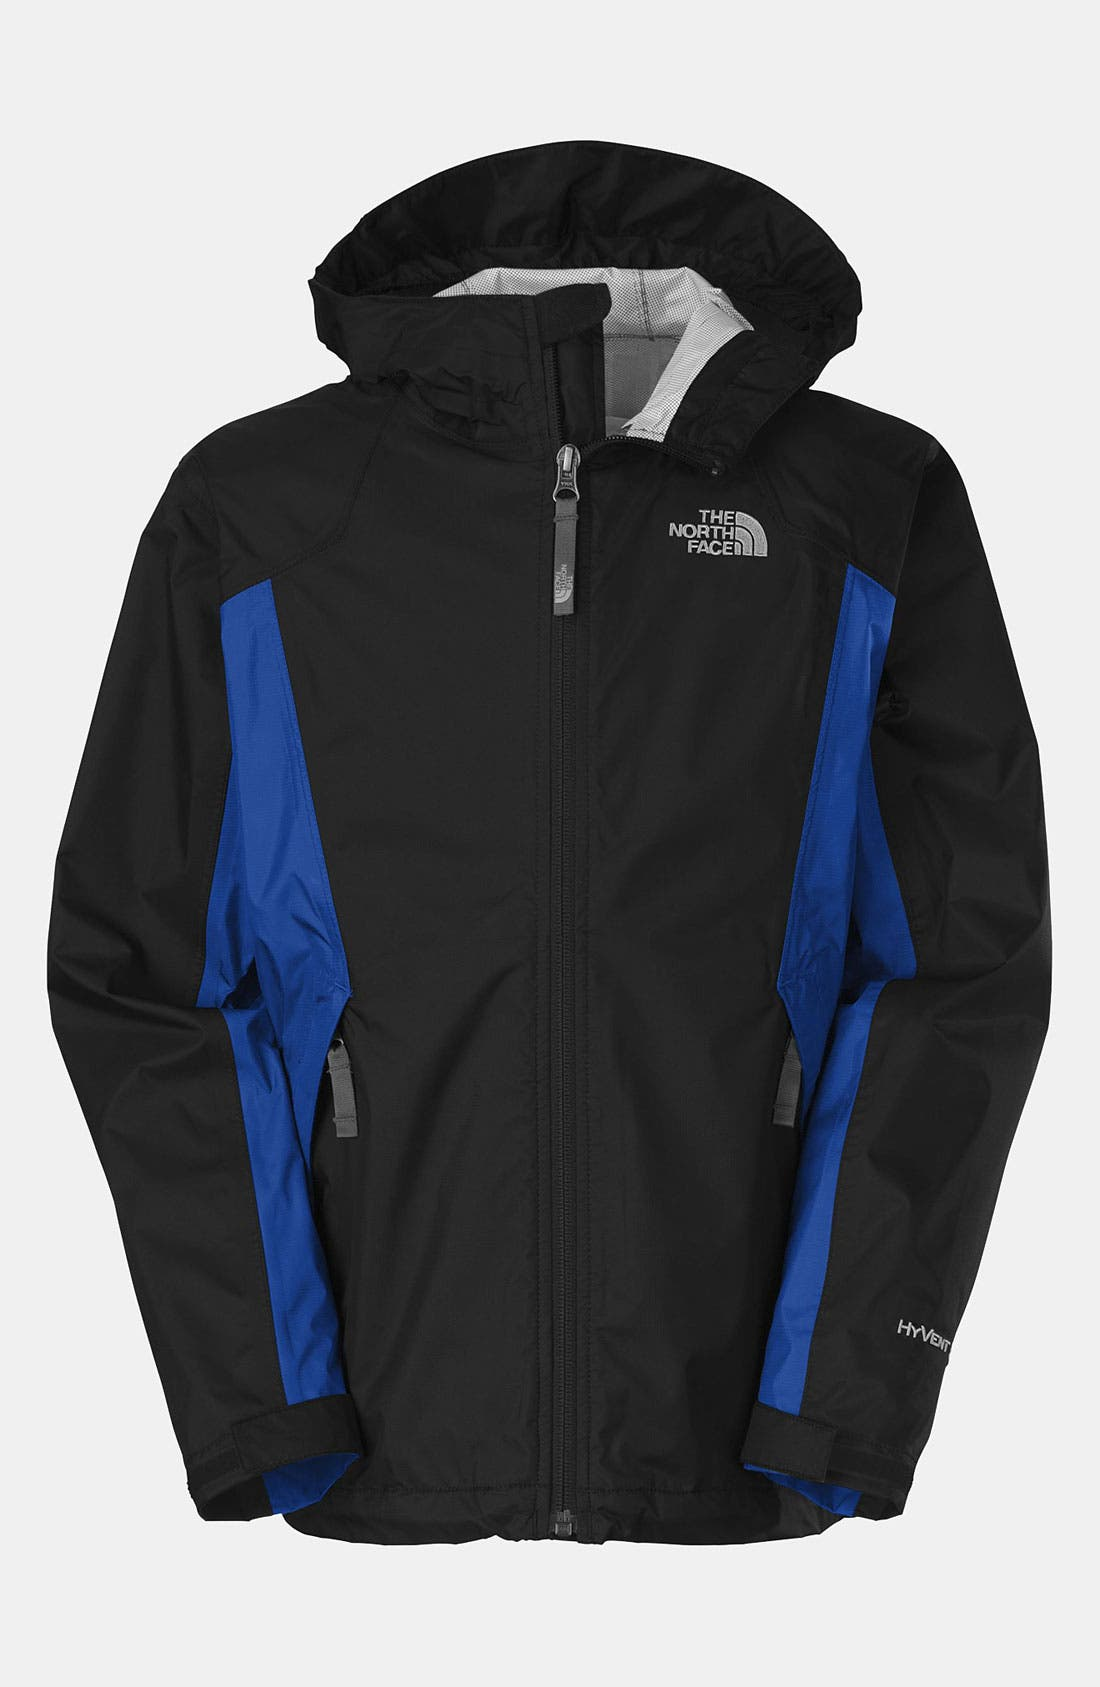 Main Image - The North Face 'Hydraspace' Rain Jacket (Little Boys & Big Boys)